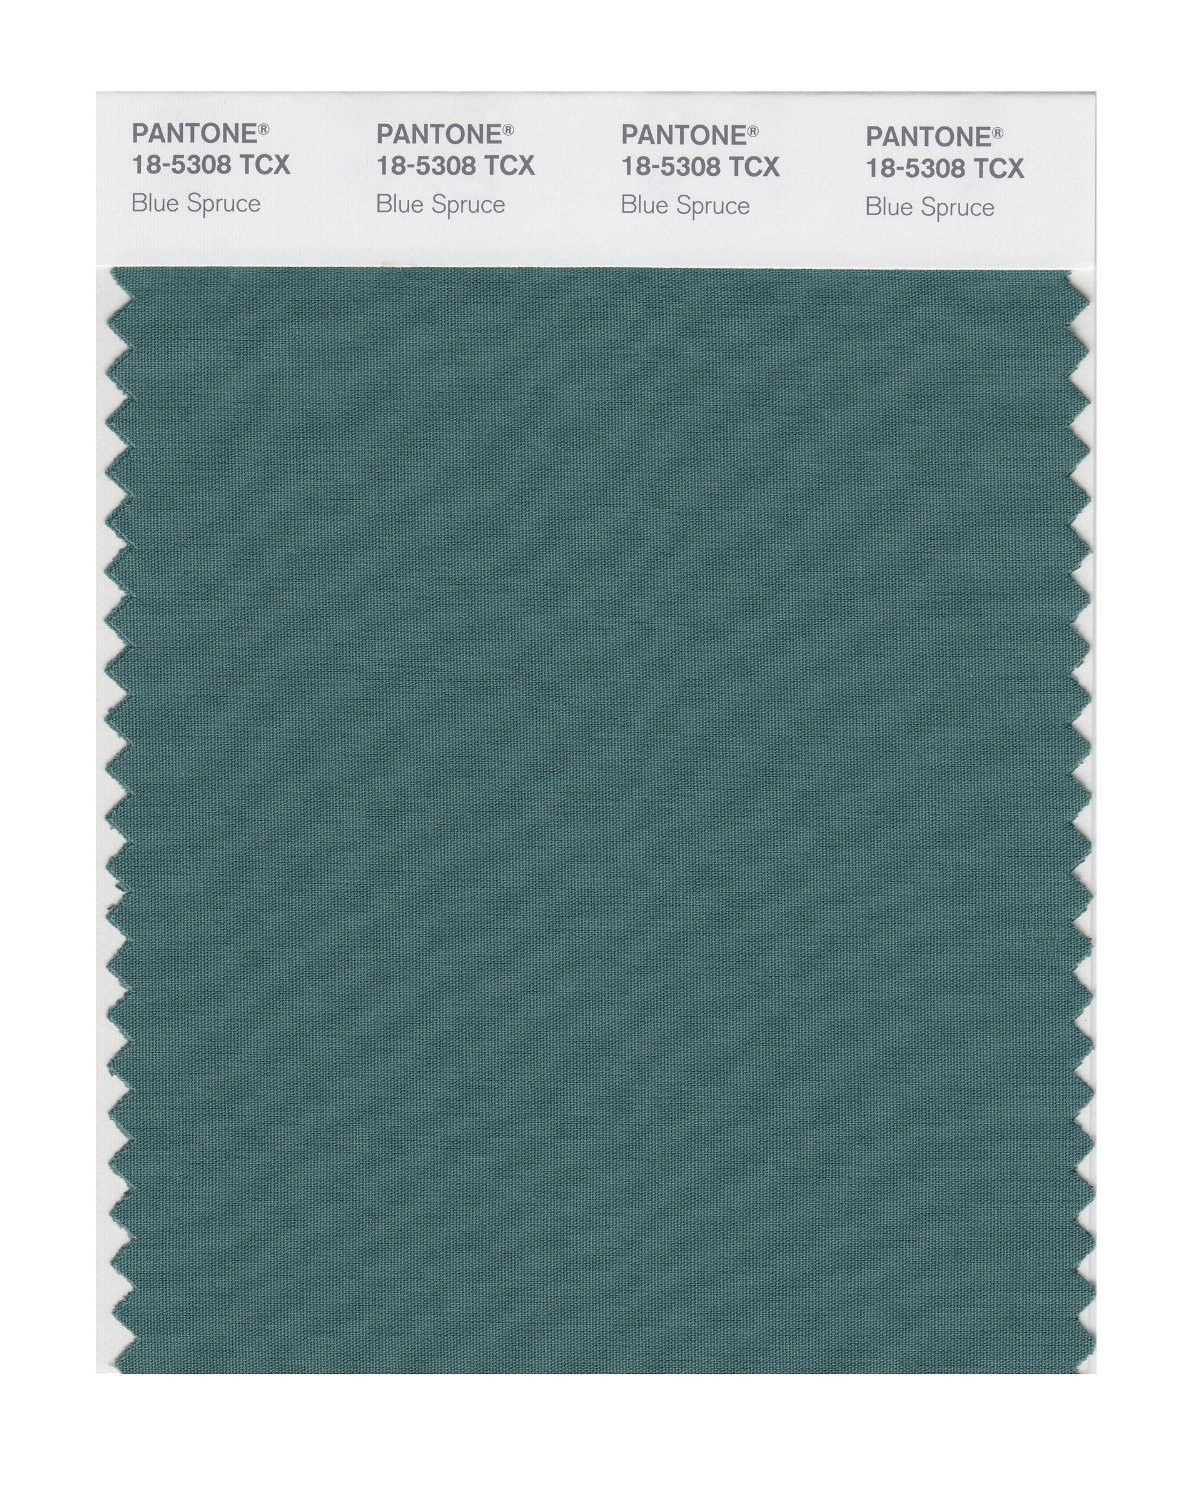 Pantone 18-5308 TCX Swatch Card Blue Spruce